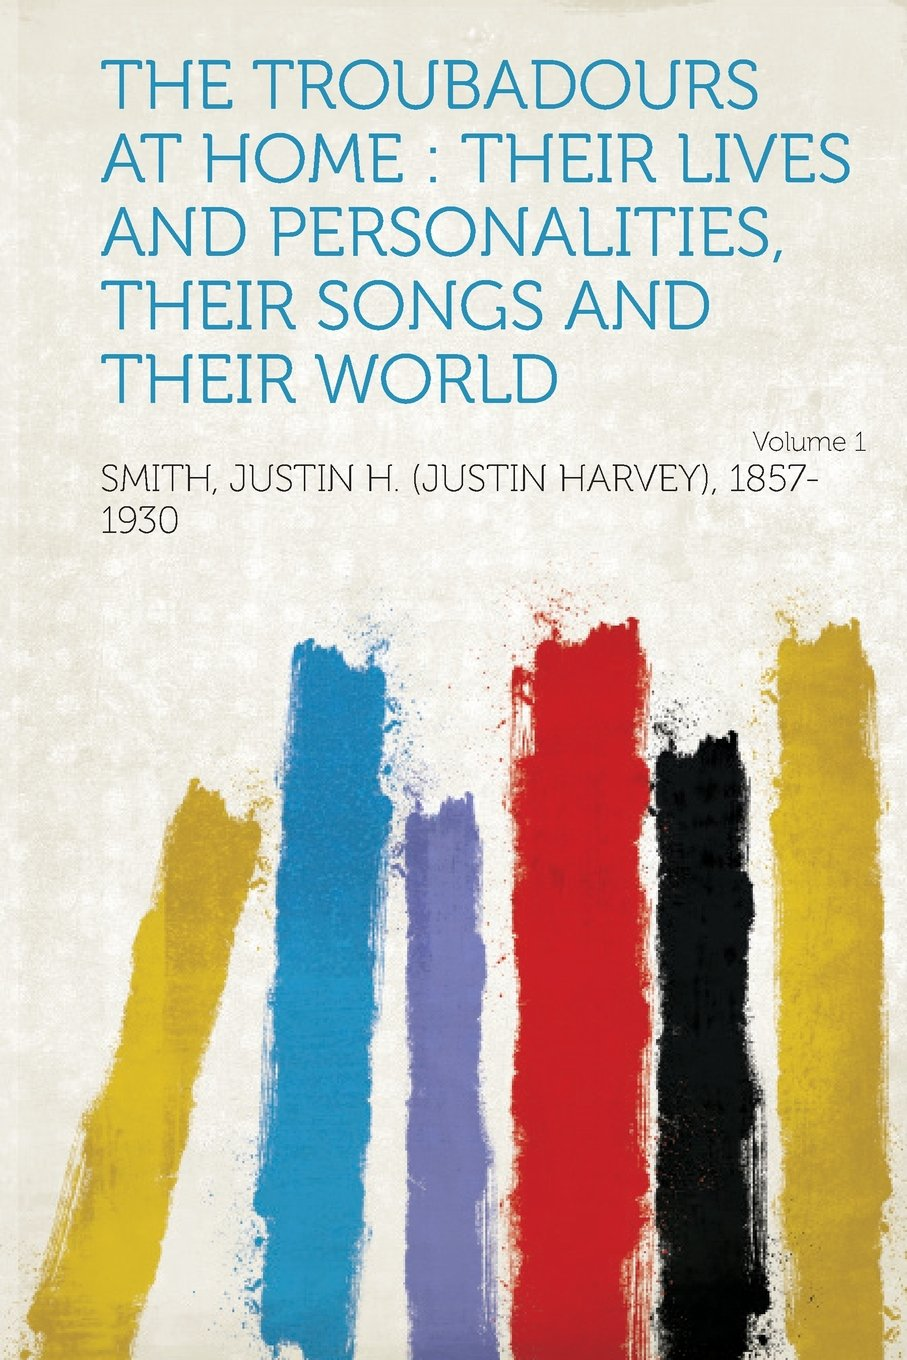 The Troubadours at Home: Their Lives and Personalities, Their Songs and Their World Volume 1 PDF